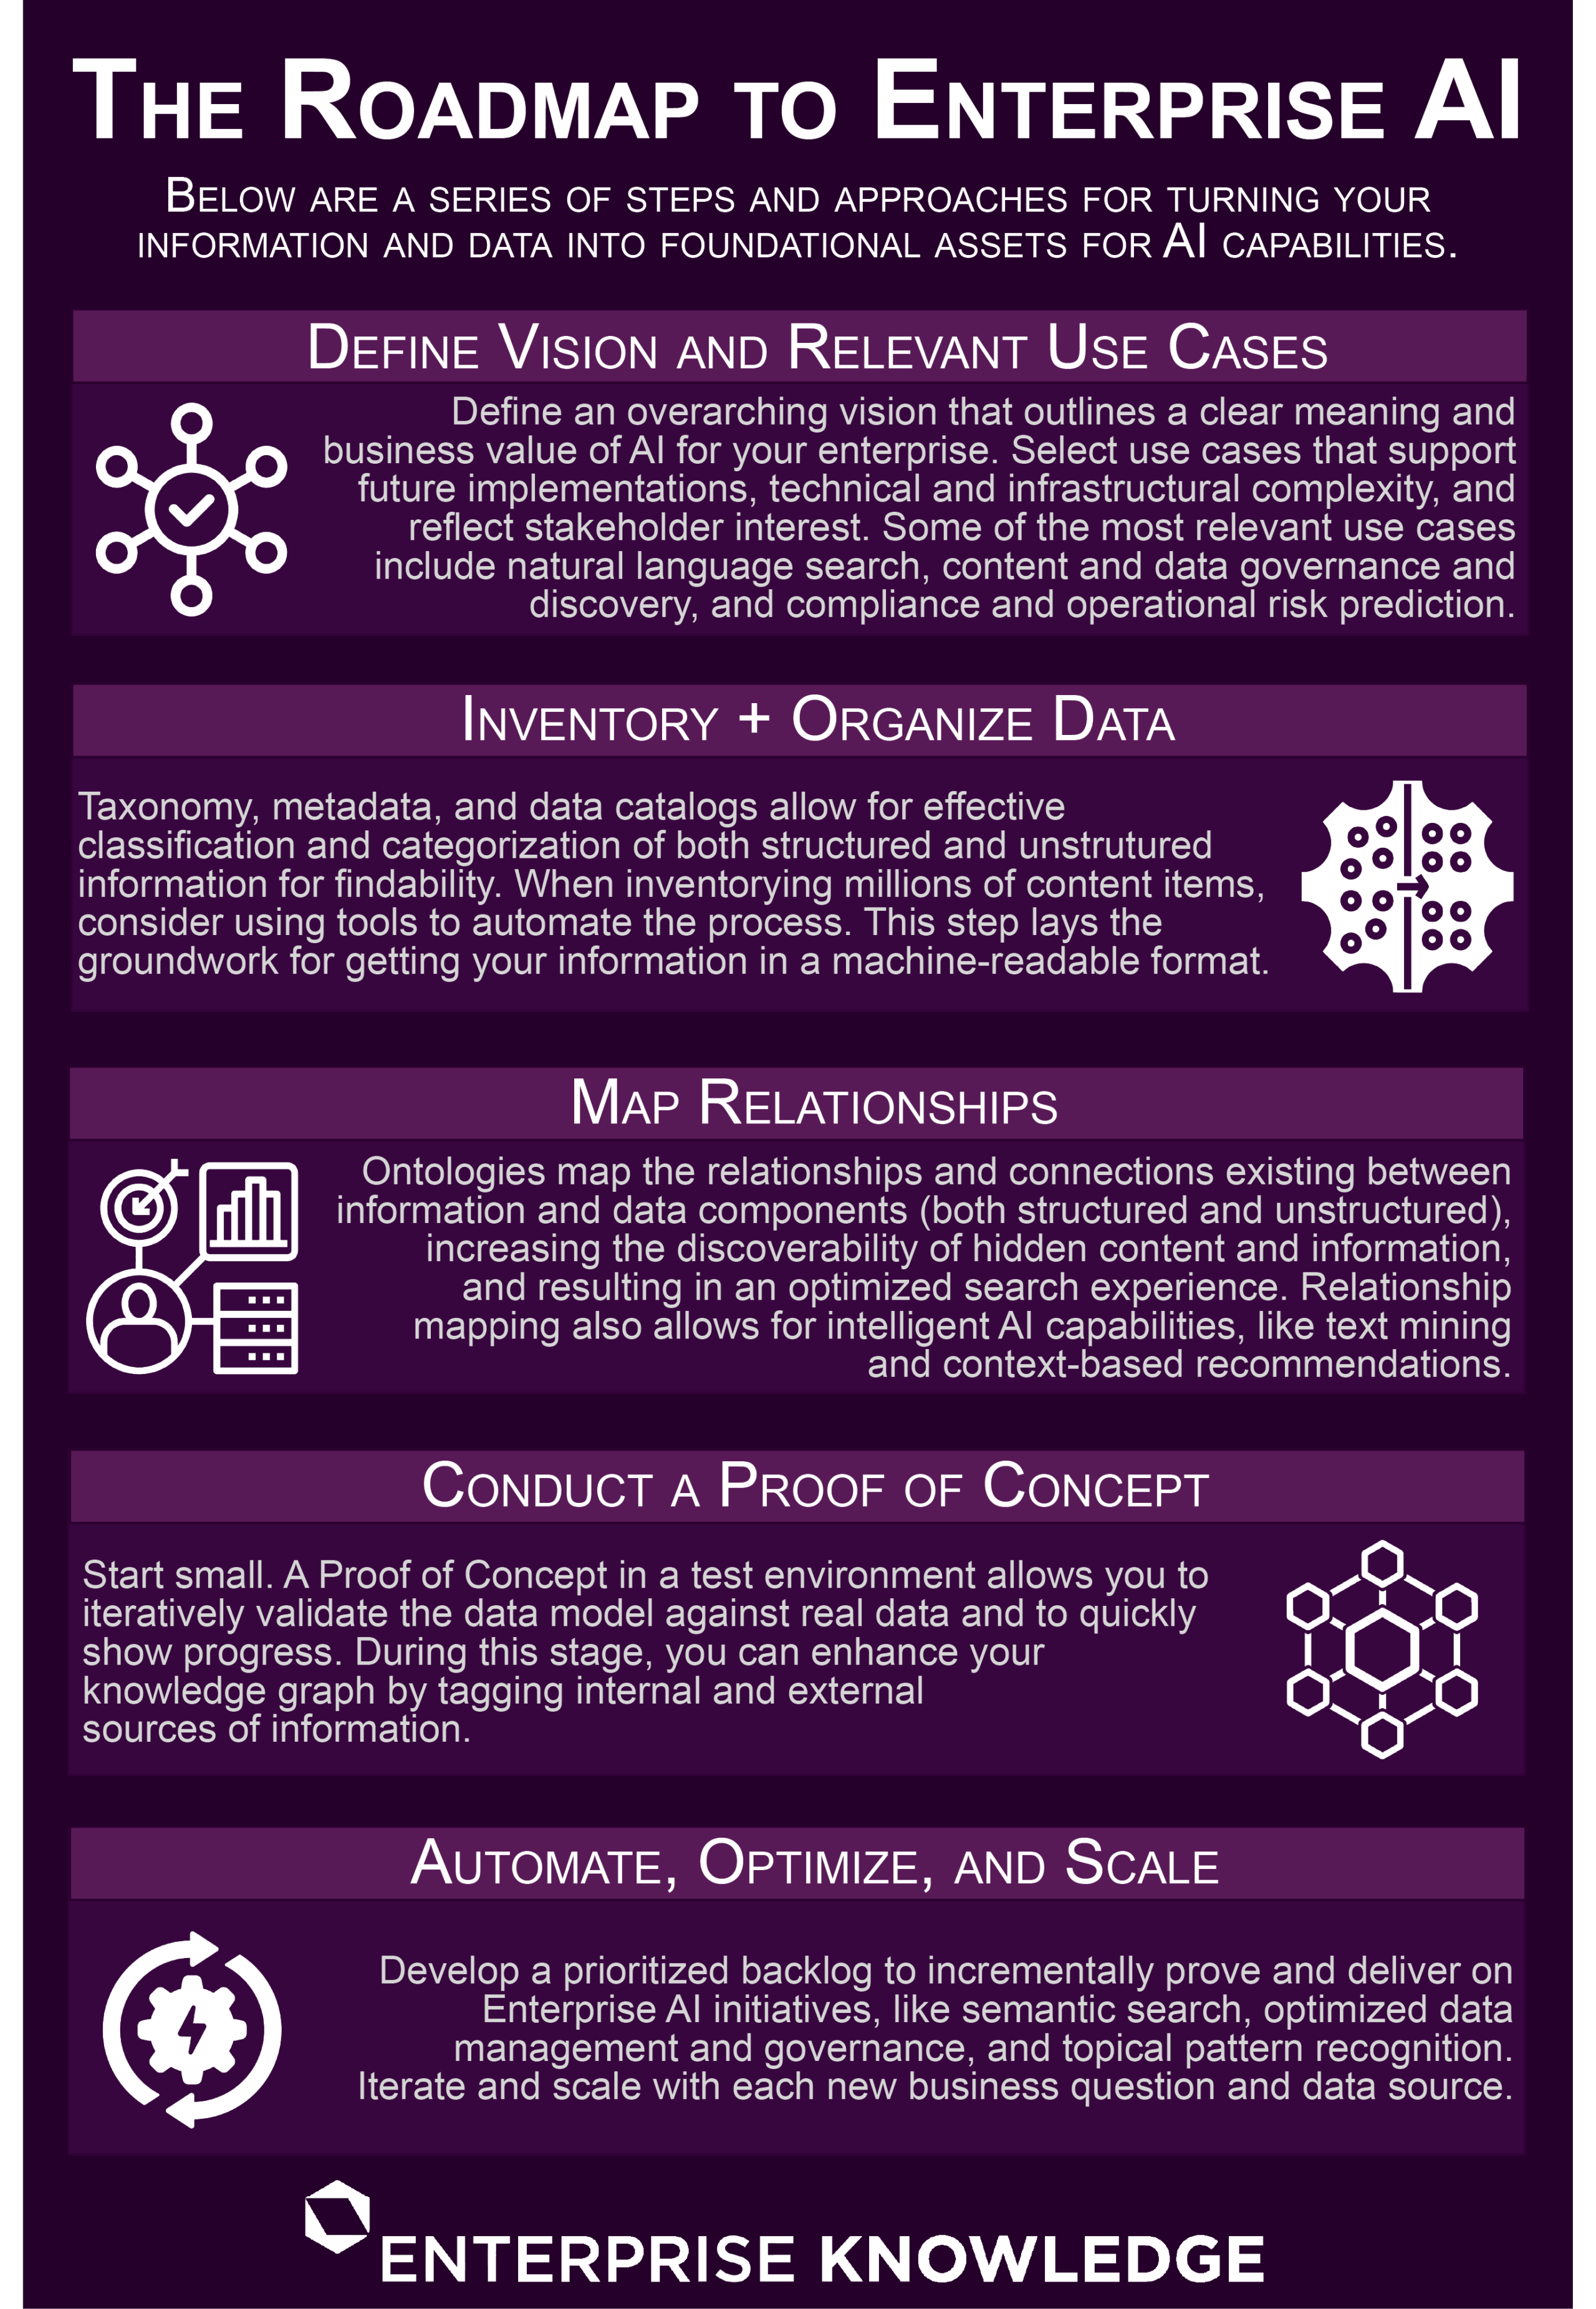 An infographic about implementing AI (artificial intelligence) capabilities into your enterprise.